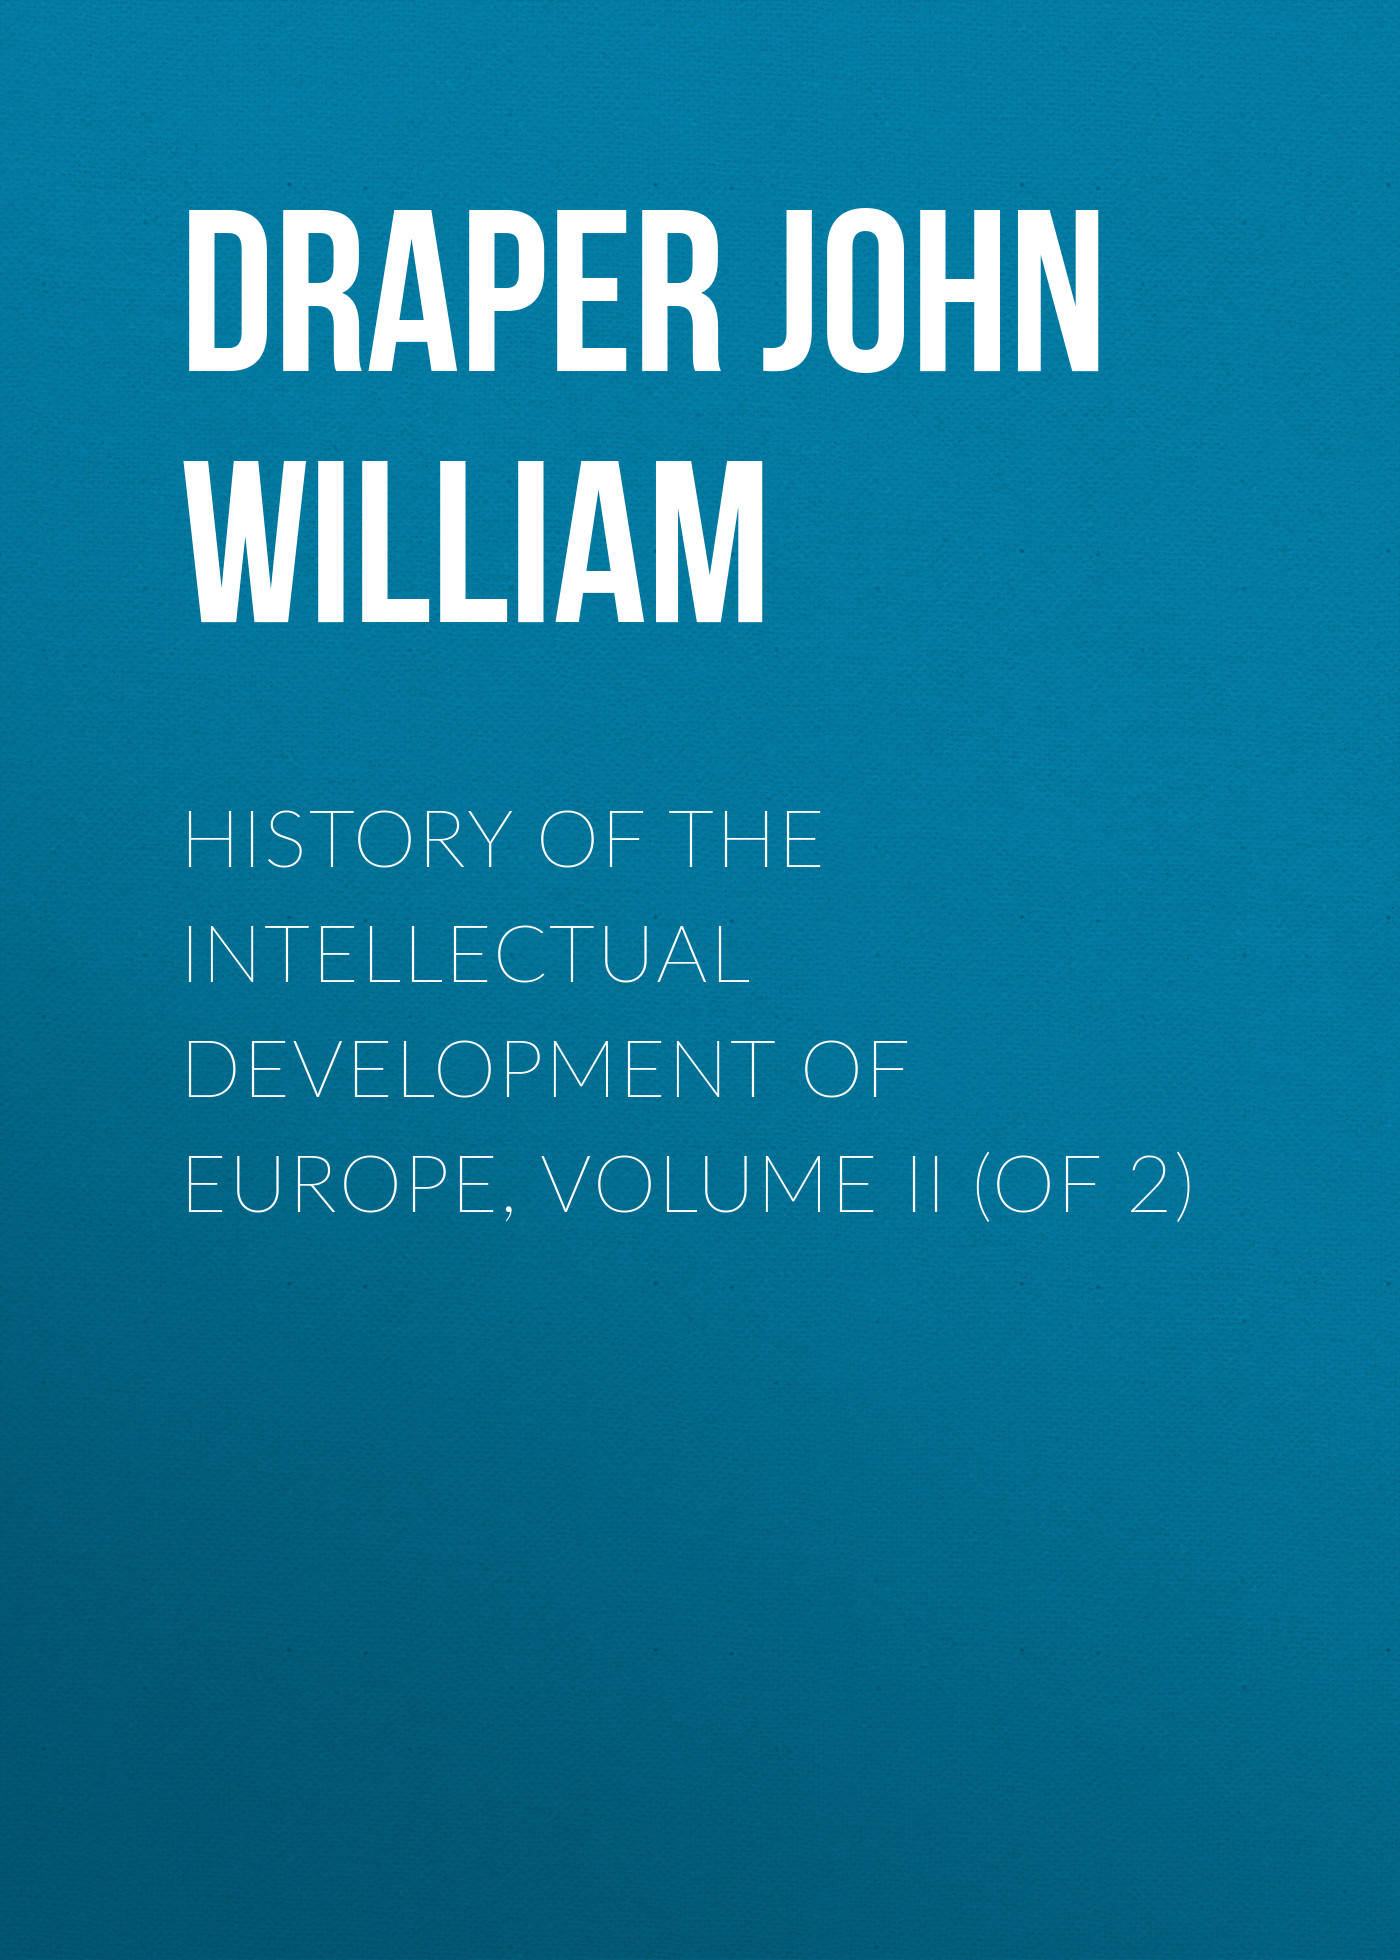 Draper John William History of the Intellectual Development of Europe, Volume II (of 2) the wisdom of john paul ii